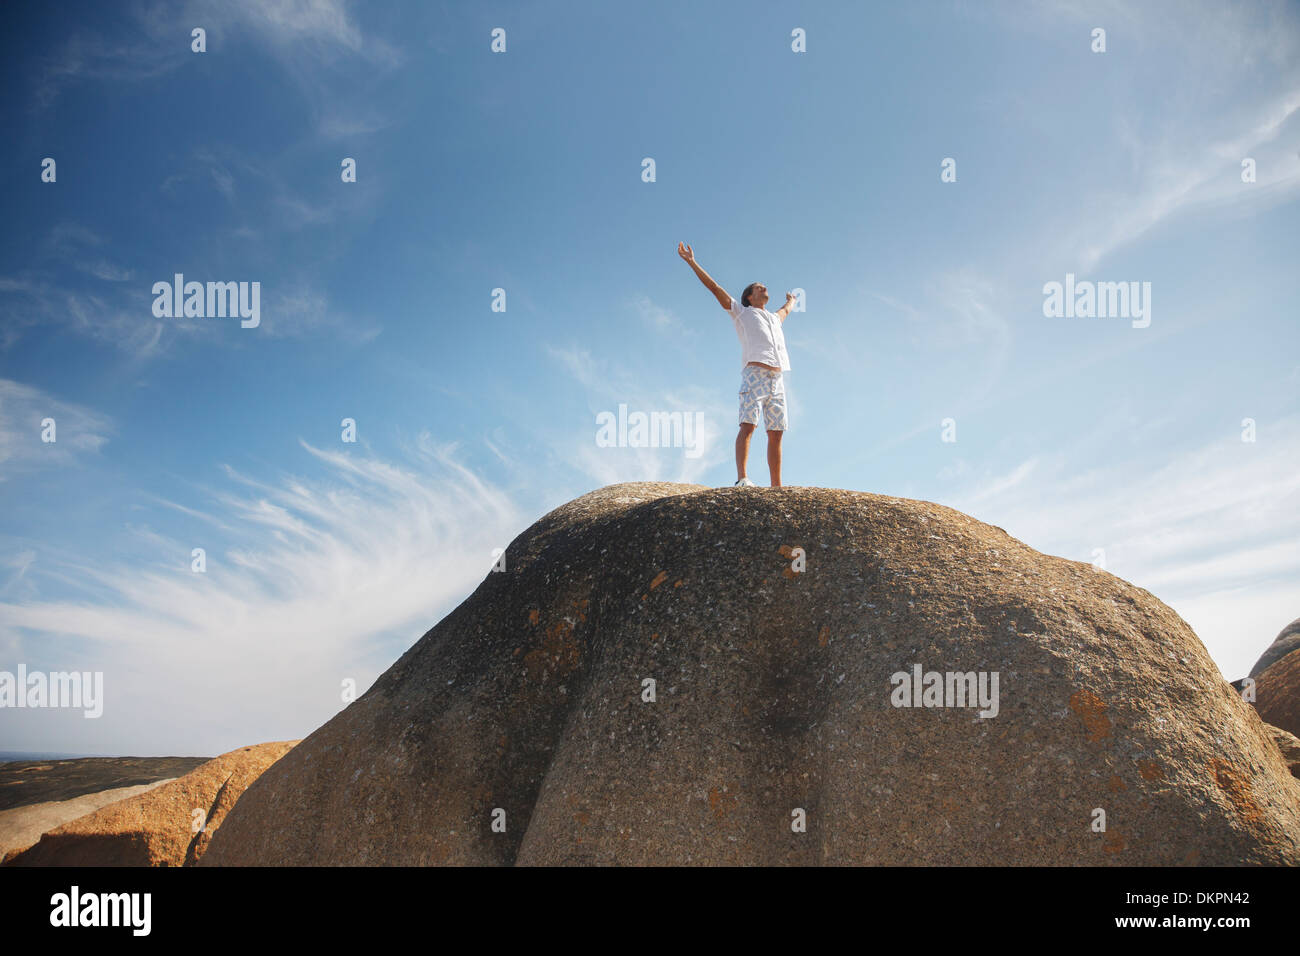 Man standing on top of rock formation - Stock Image